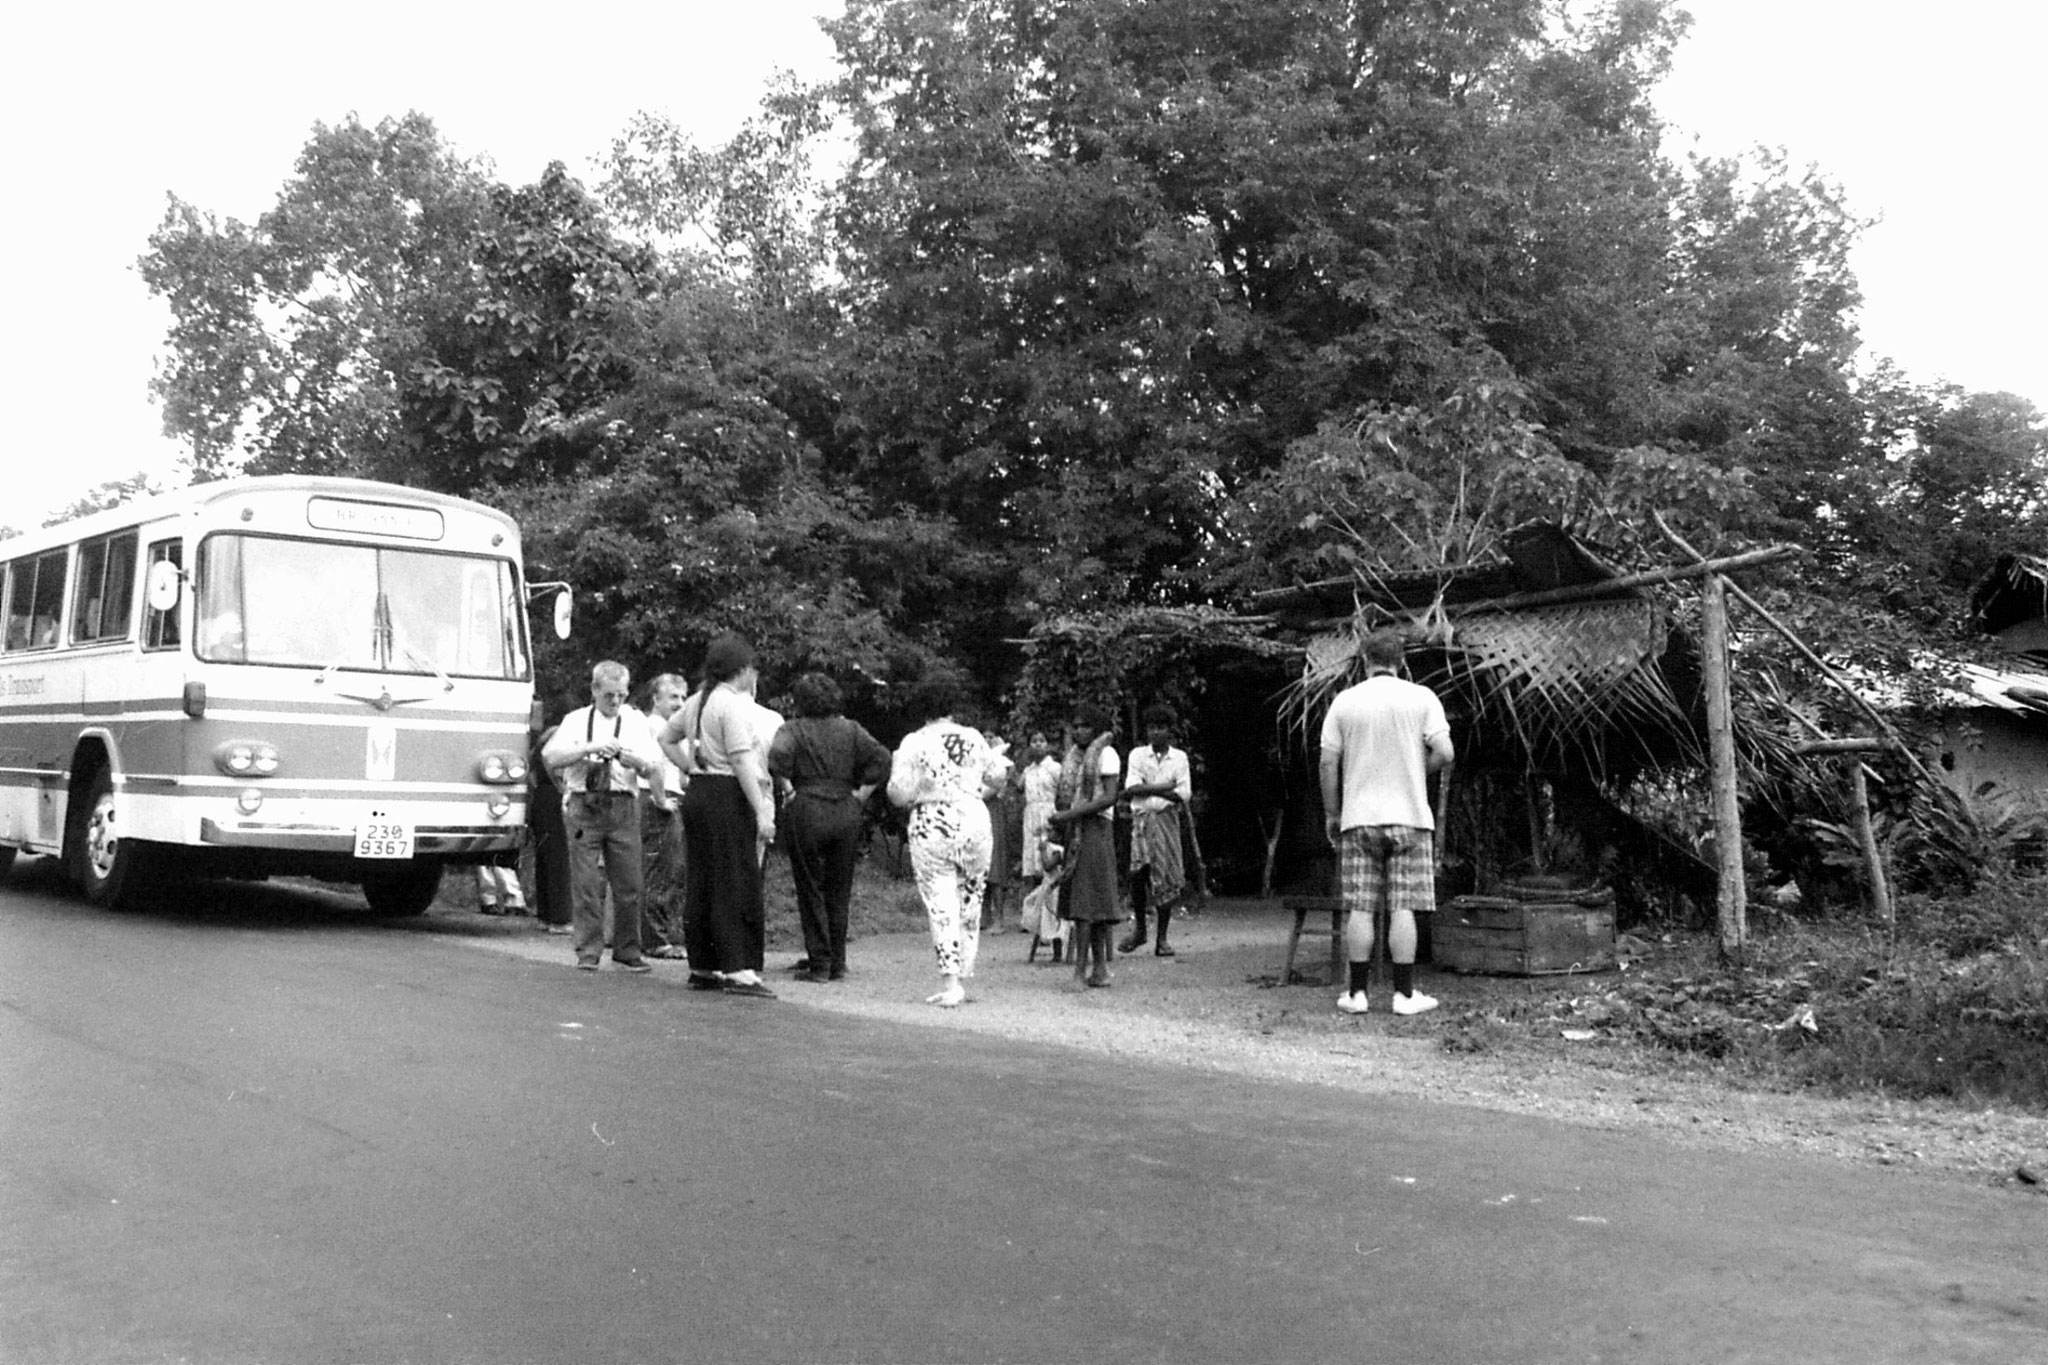 7/2/90: 9: tourists with snake between Sigiriya and Polonnaruwa